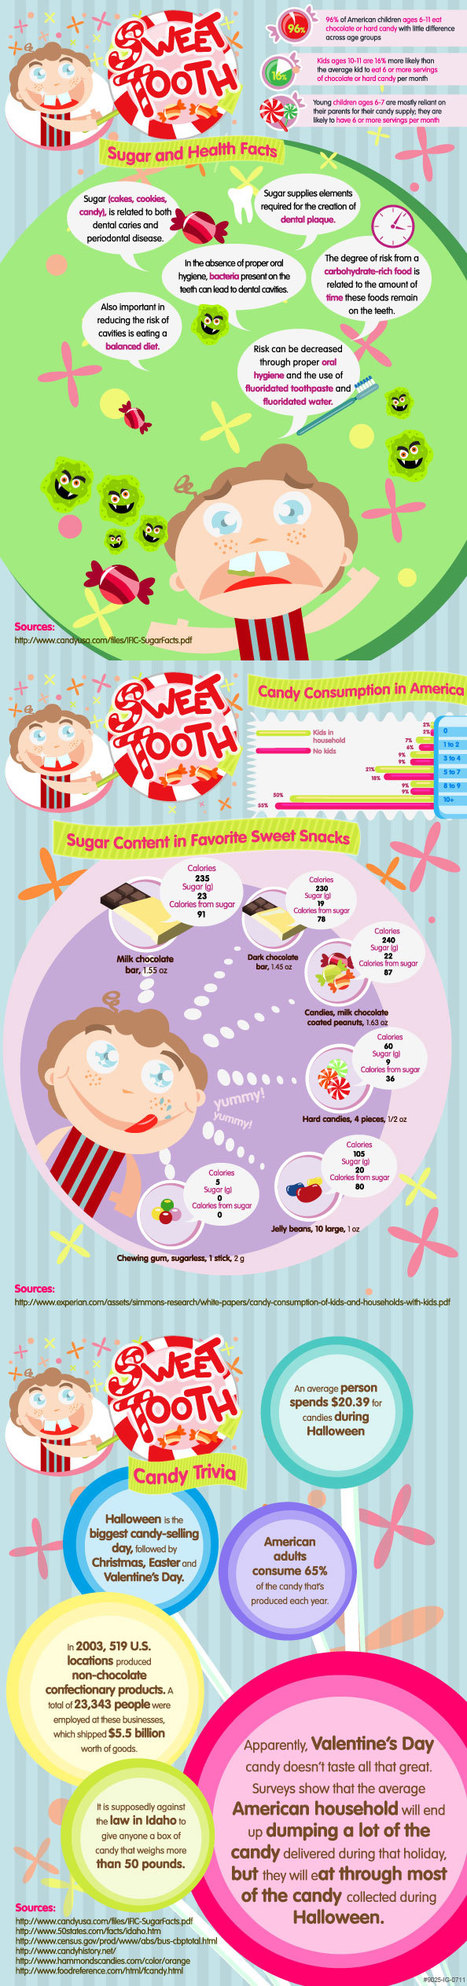 The Sweet Tooth [Infographic] @The_Infographic @ExpatHealthIns   EPIC Infographic   Scoop.it